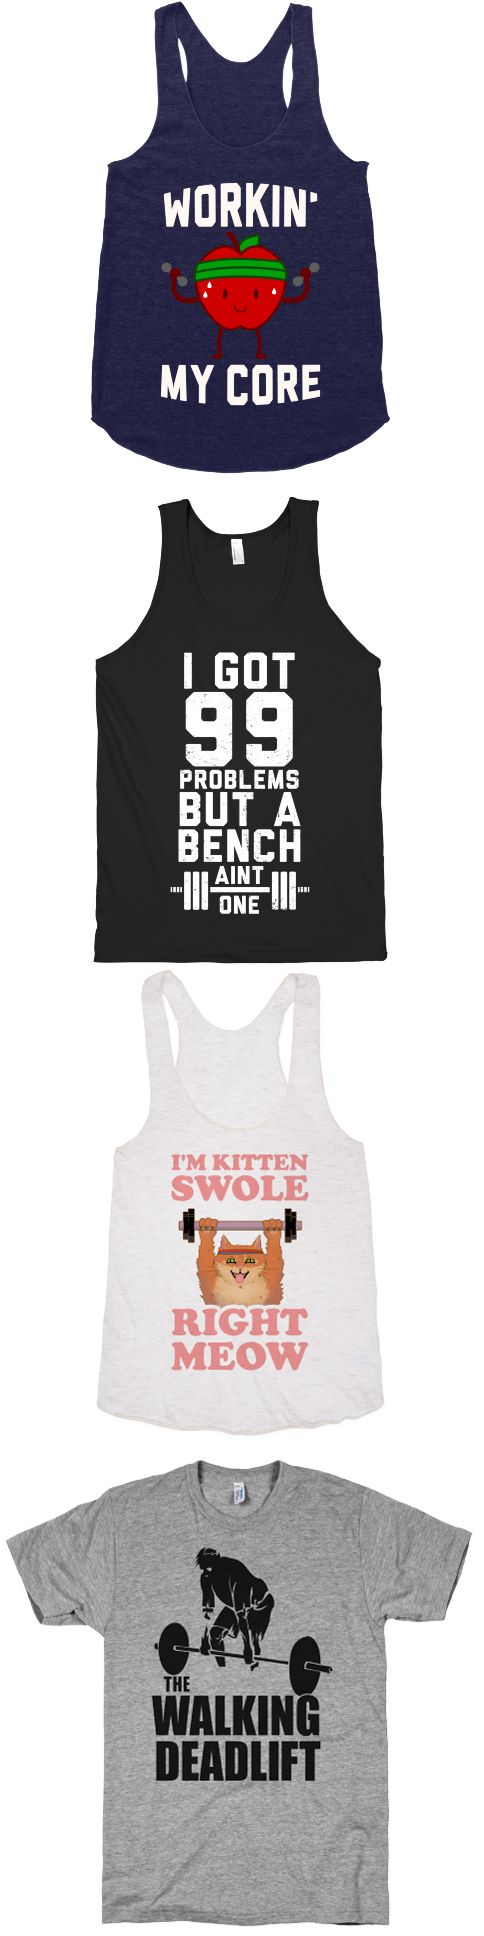 Get fit in the gym with these awesome designs.